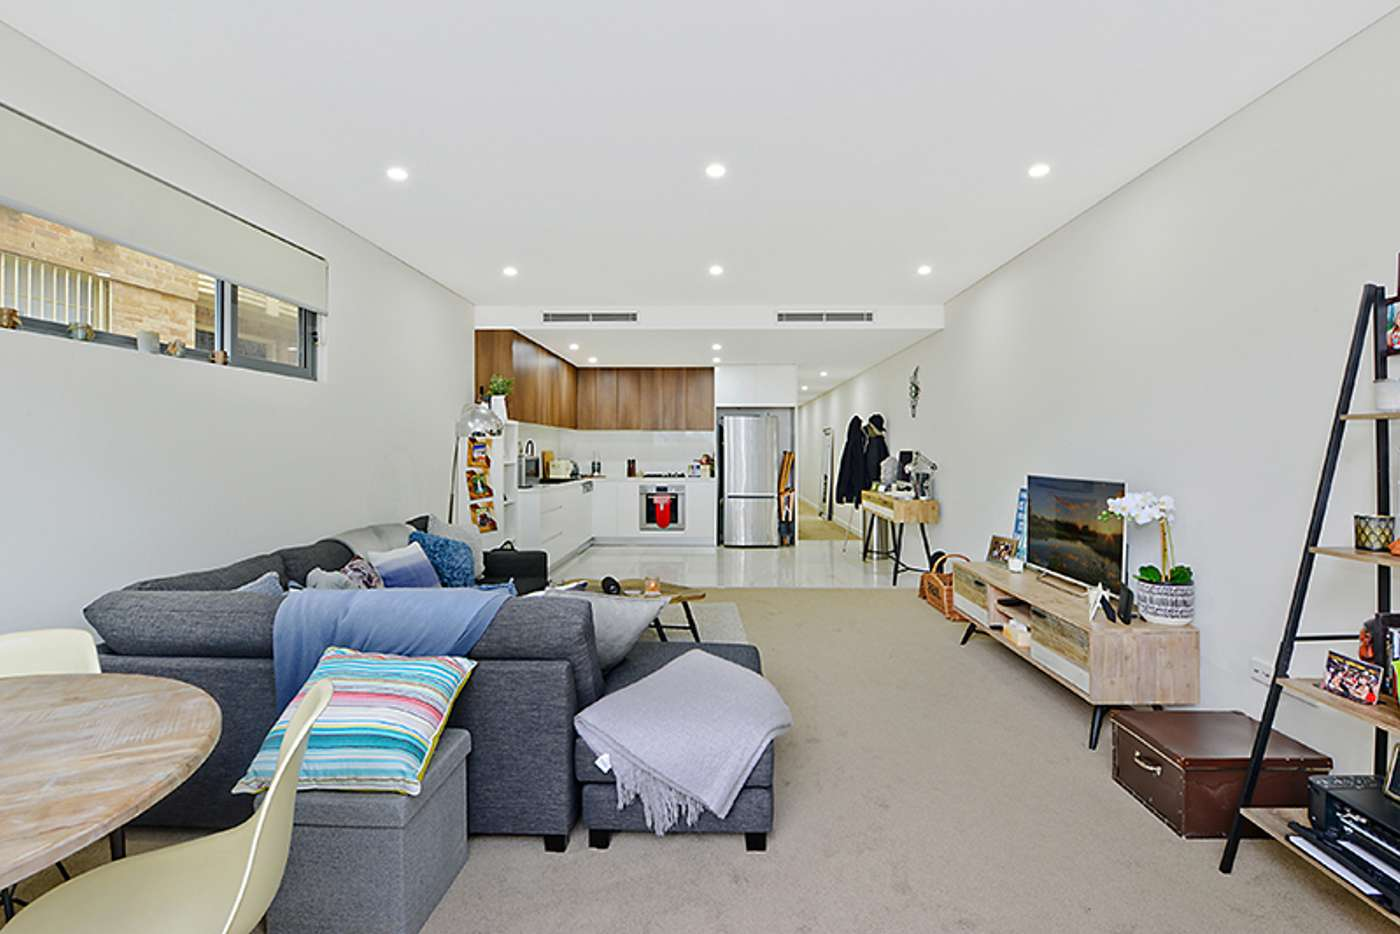 Sixth view of Homely apartment listing, 1/53 Birriga Road, Bellevue Hill NSW 2023